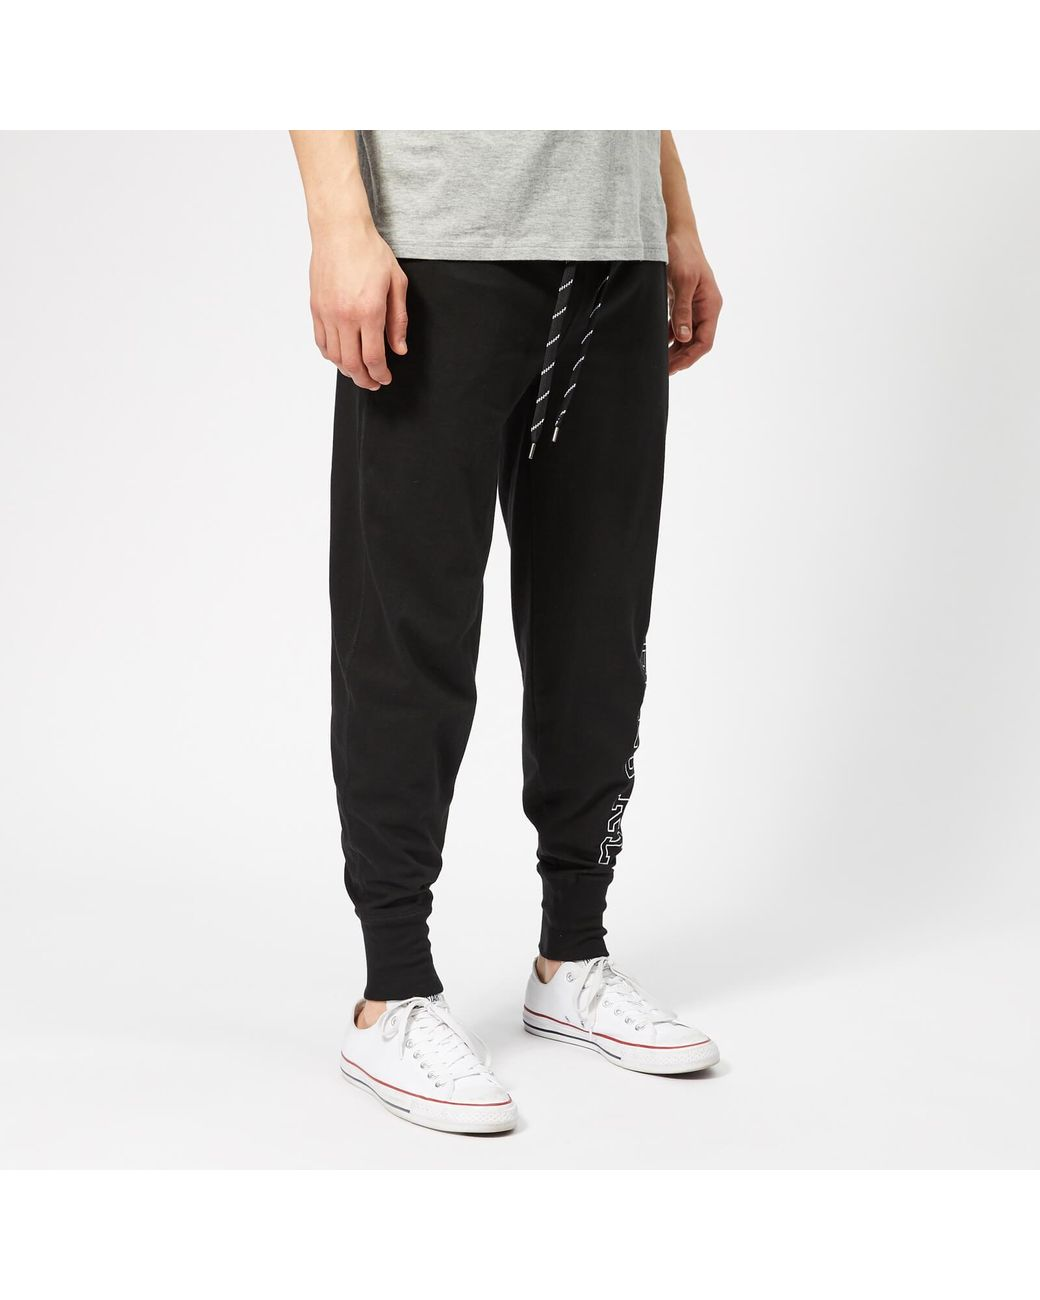 247cac79159f Polo Ralph Lauren Cotton Joggers in Black for Men - Lyst